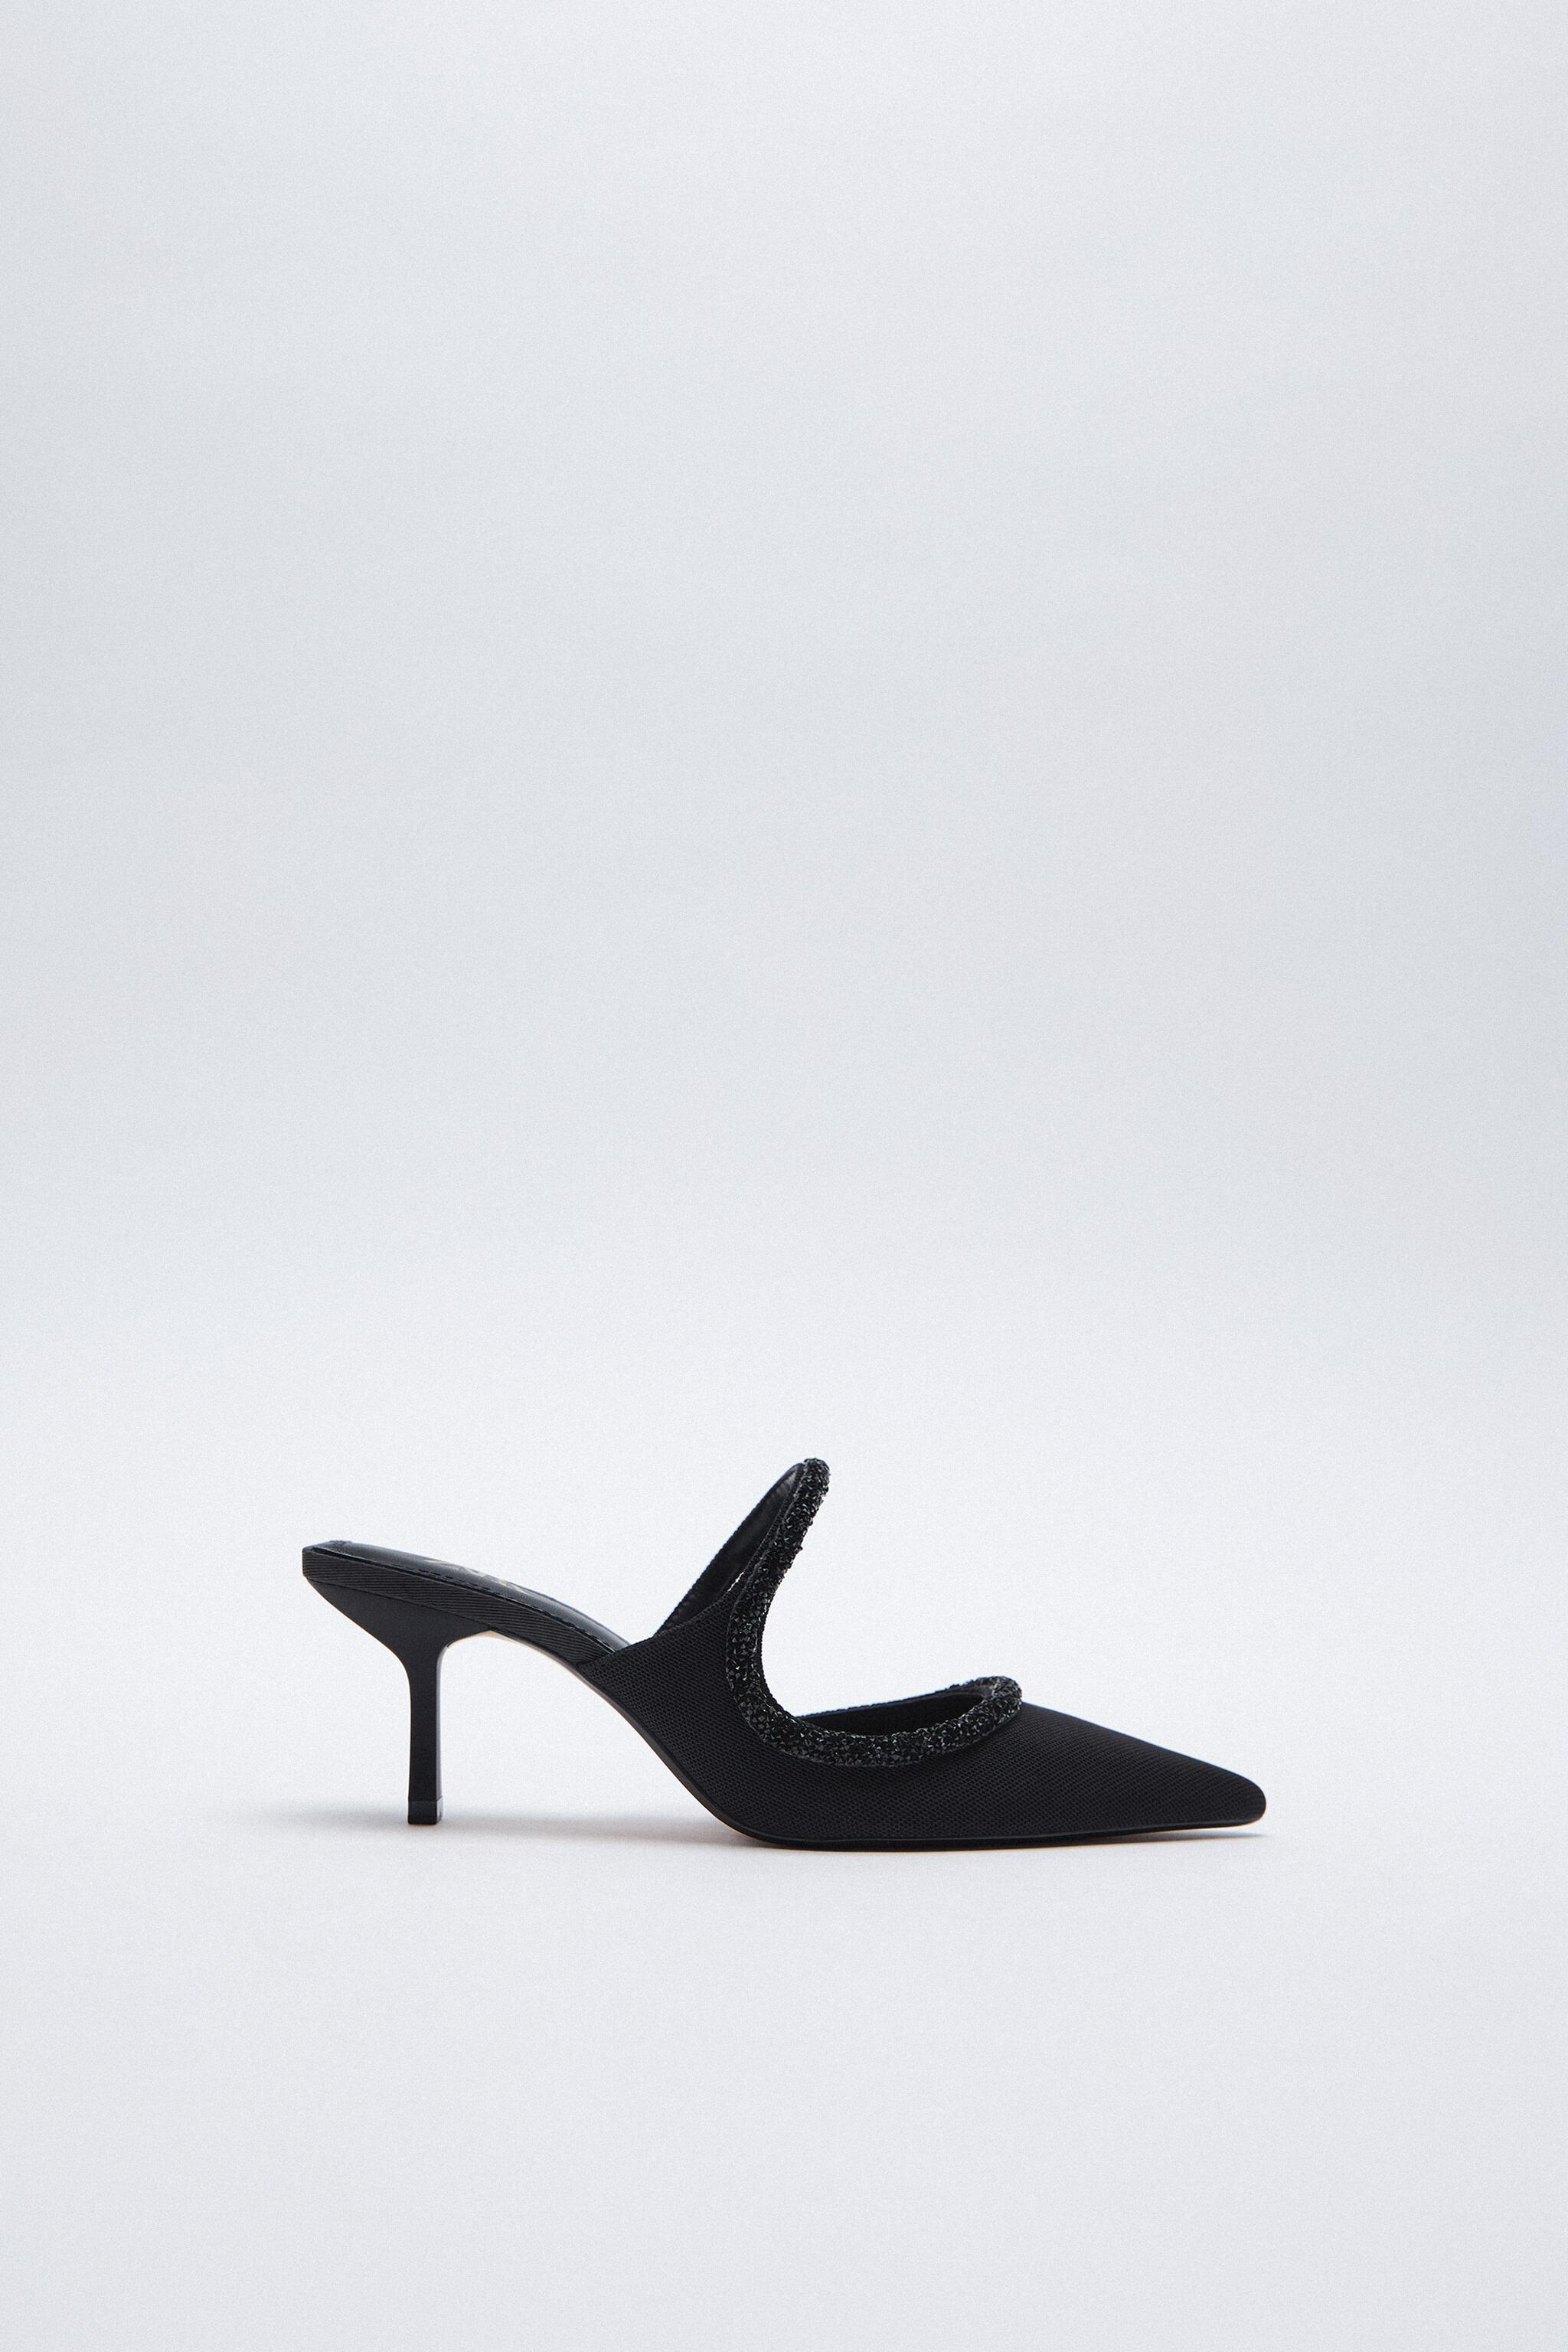 SPARKLY POINTED TOE HEELED SHOES